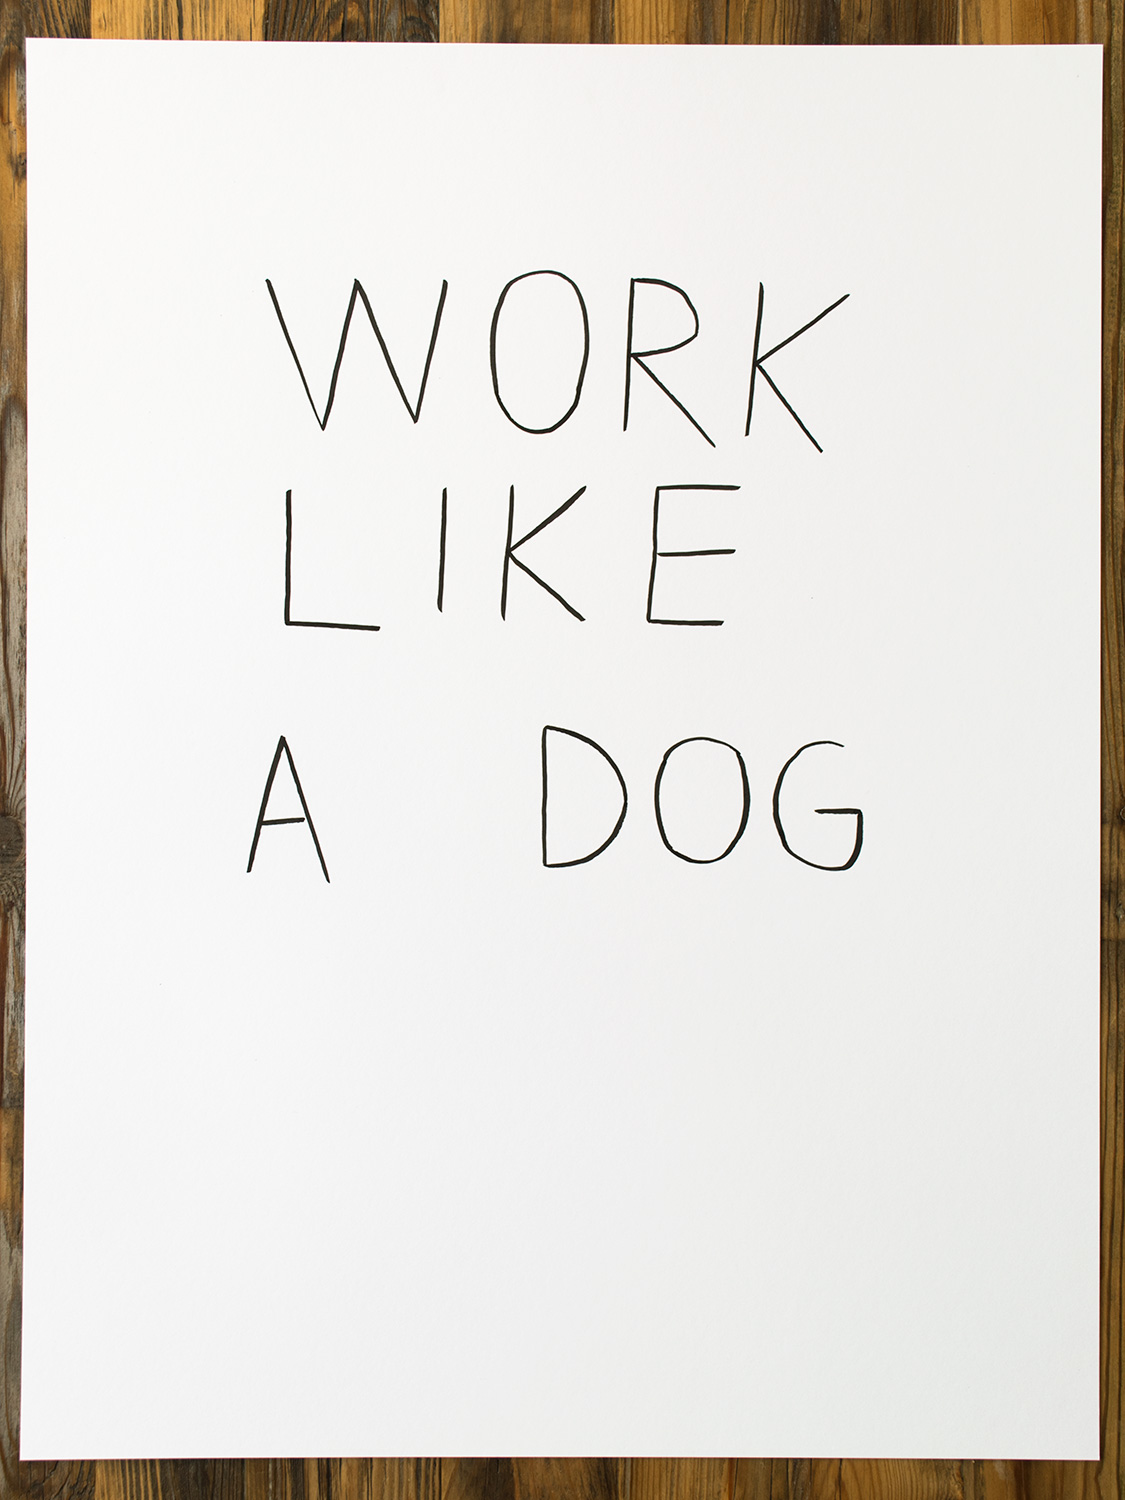 work_like_a_dog-1500x1125.jpg